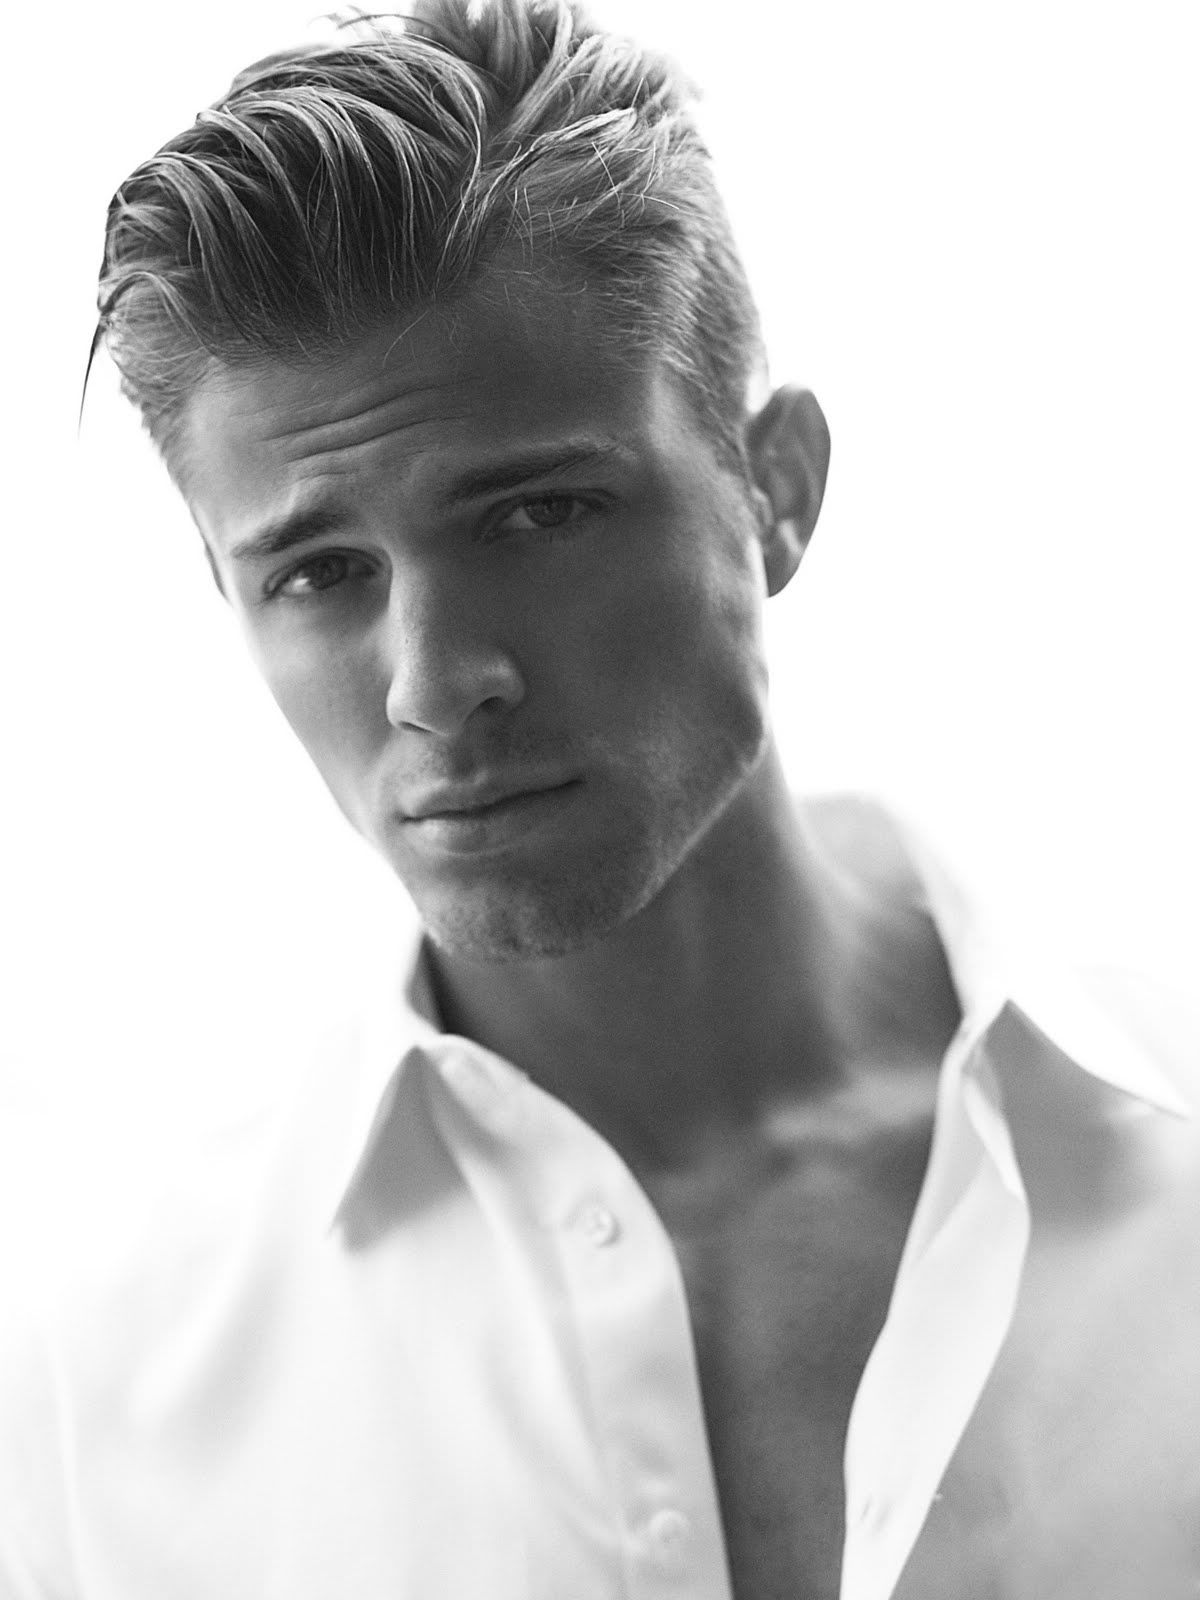 Medium short haircut men oh my     yum  pinterest  handsome faces and sexy guys